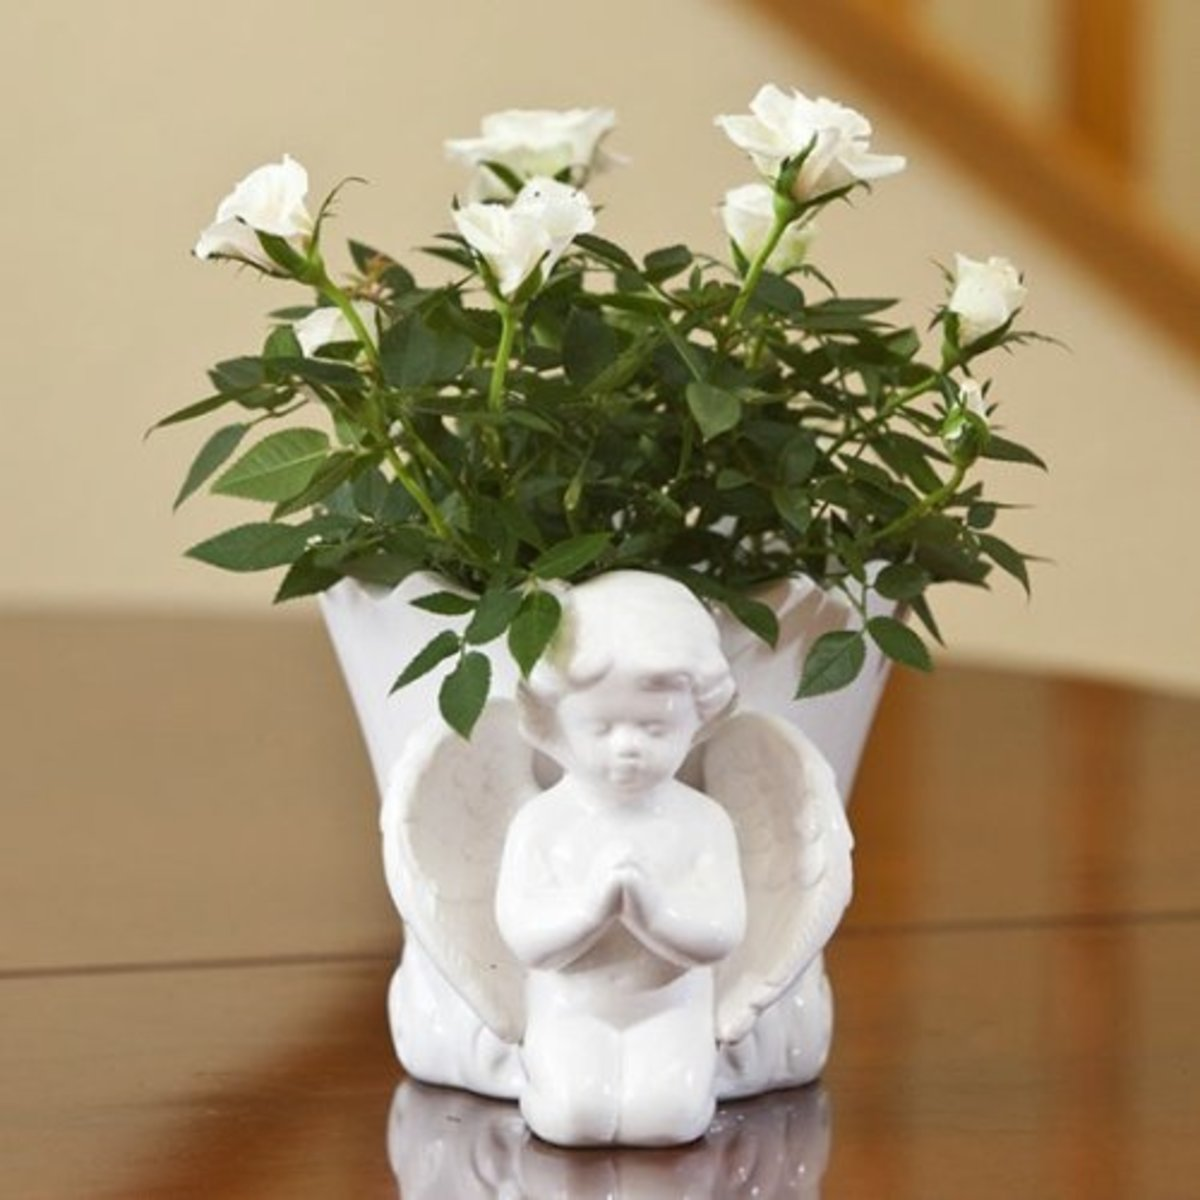 White Roses with Spiritual Message Image